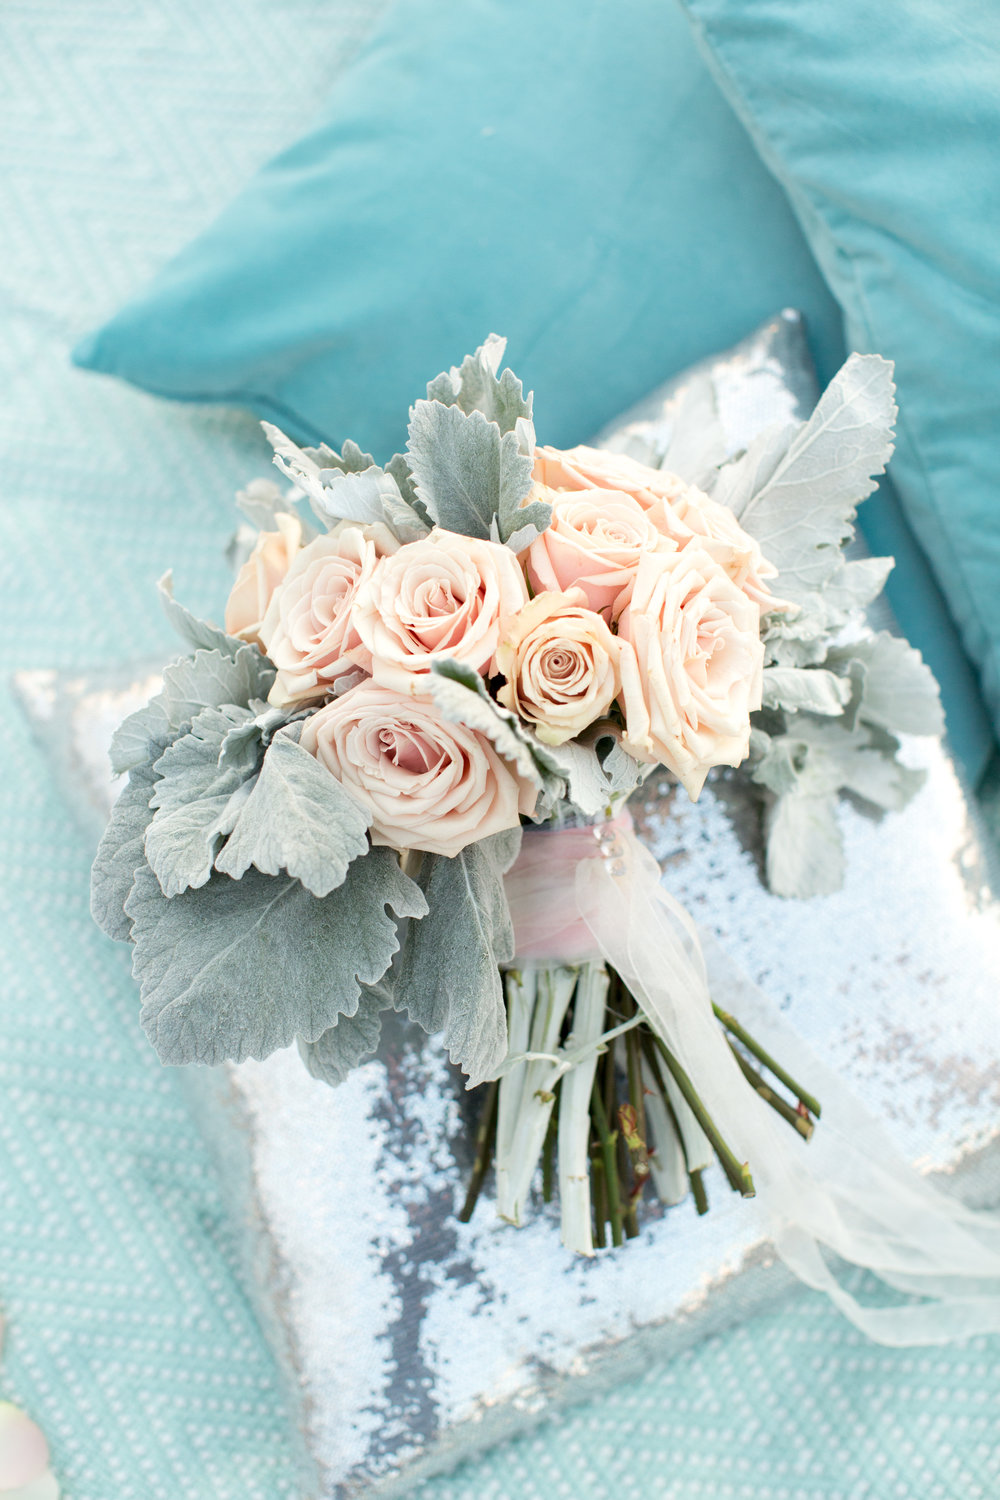 blush pink rose and dusty miller bouquet with sheer ribbon and pearl detail for beach wedding or engagement